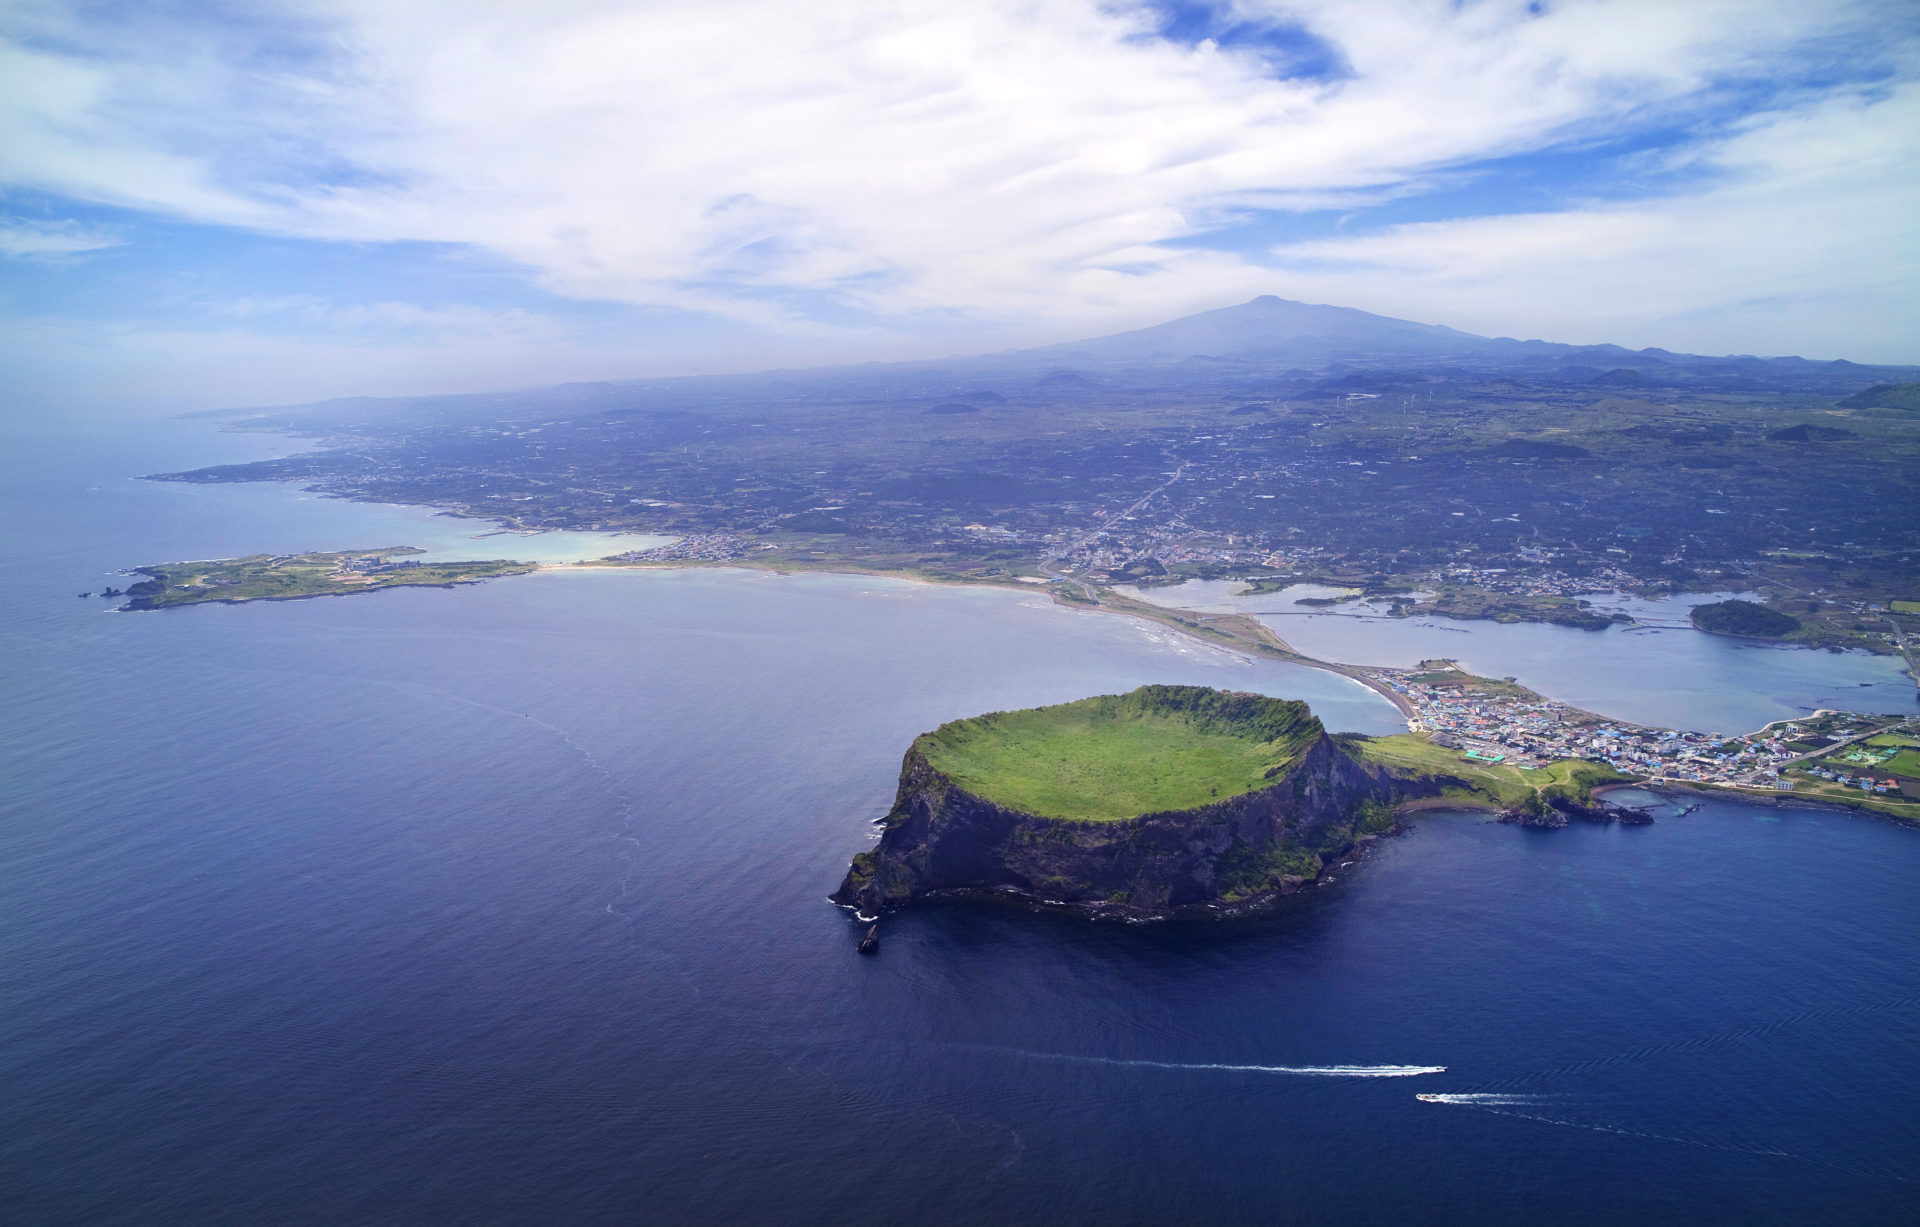 A central feature of Jeju is Hallasan, the tallest mountain in South Korea and a dormant volcano, which rises 1,950 m above sea level.